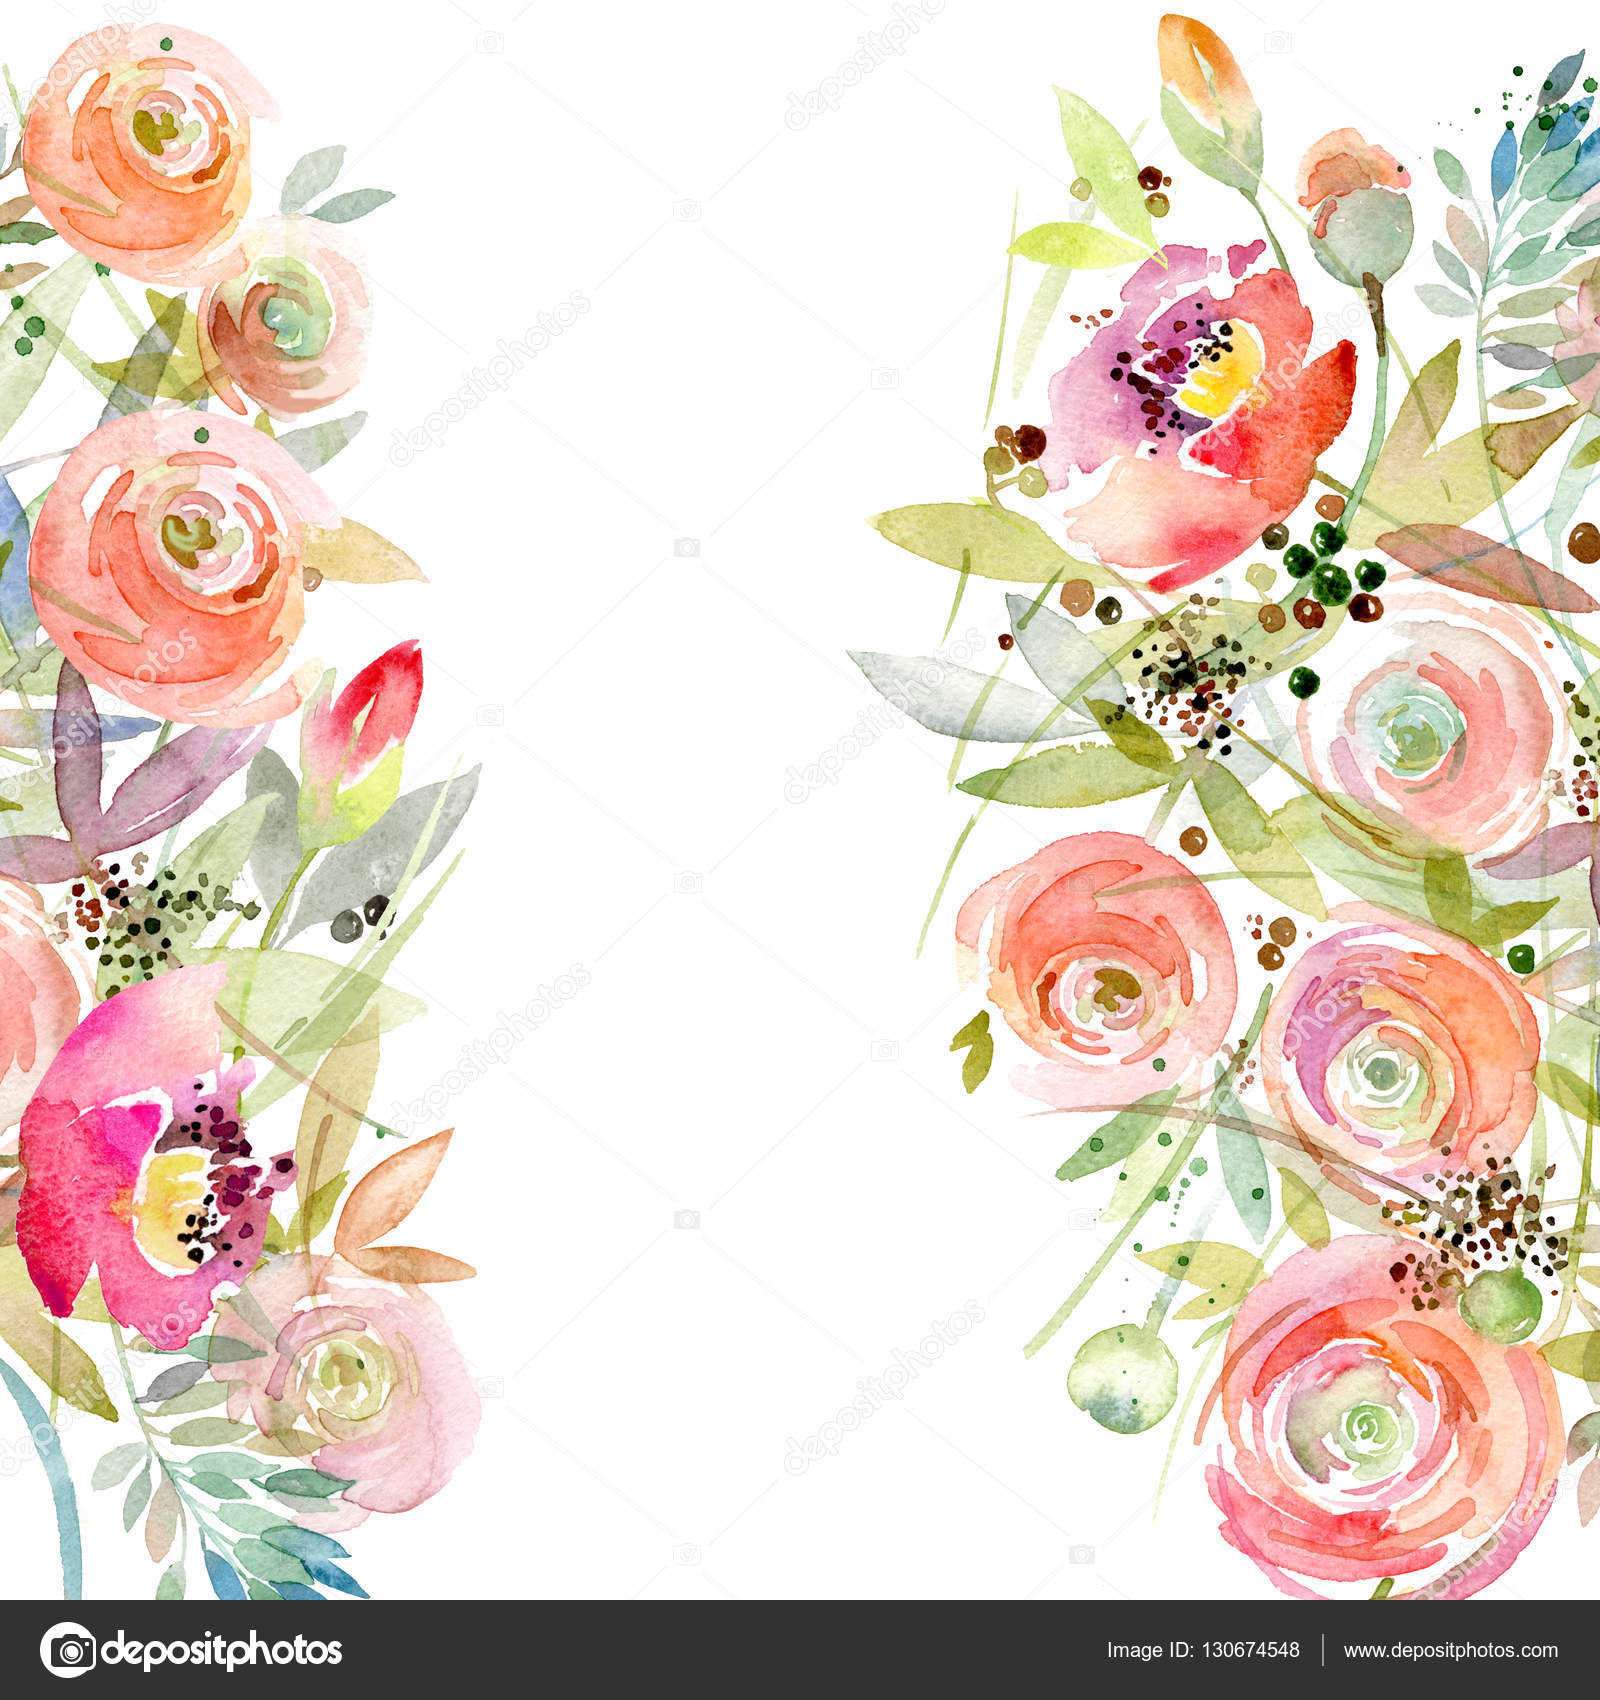 Cute Rustic Fall Wallpapers For Laptop Watercolor Flower Background Vintage Flower Greeting